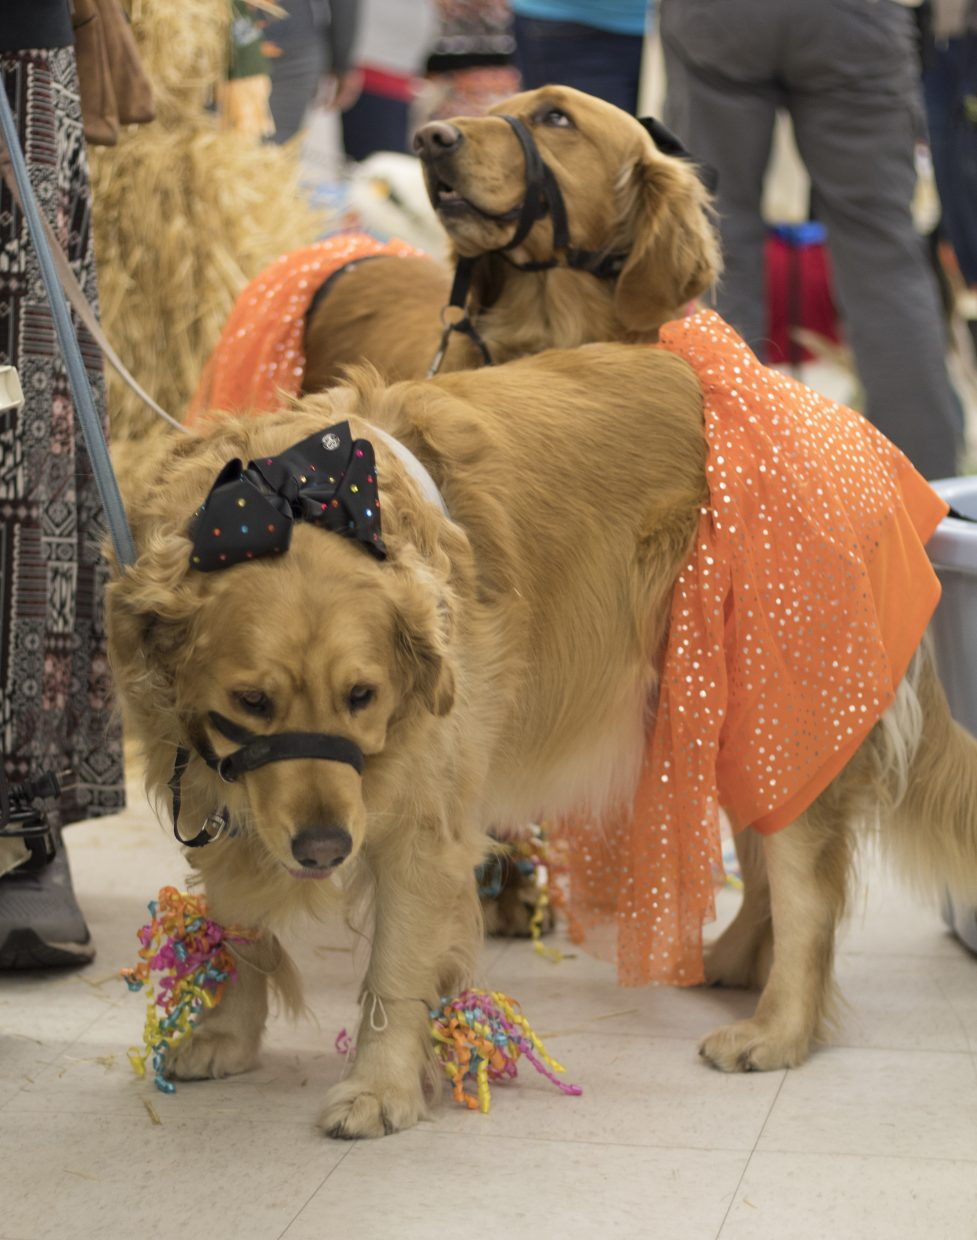 Sally and Rio show off their costumes Saturday at Murdoch's Ranch and Home Supply's annual Growl-O-Ween event, in which residents were invited to dress their furry friends —and themselves — in costume for the chance to win a $100 Murdoch's gift card. Sally and Rio are owned by Cathy Pearson.